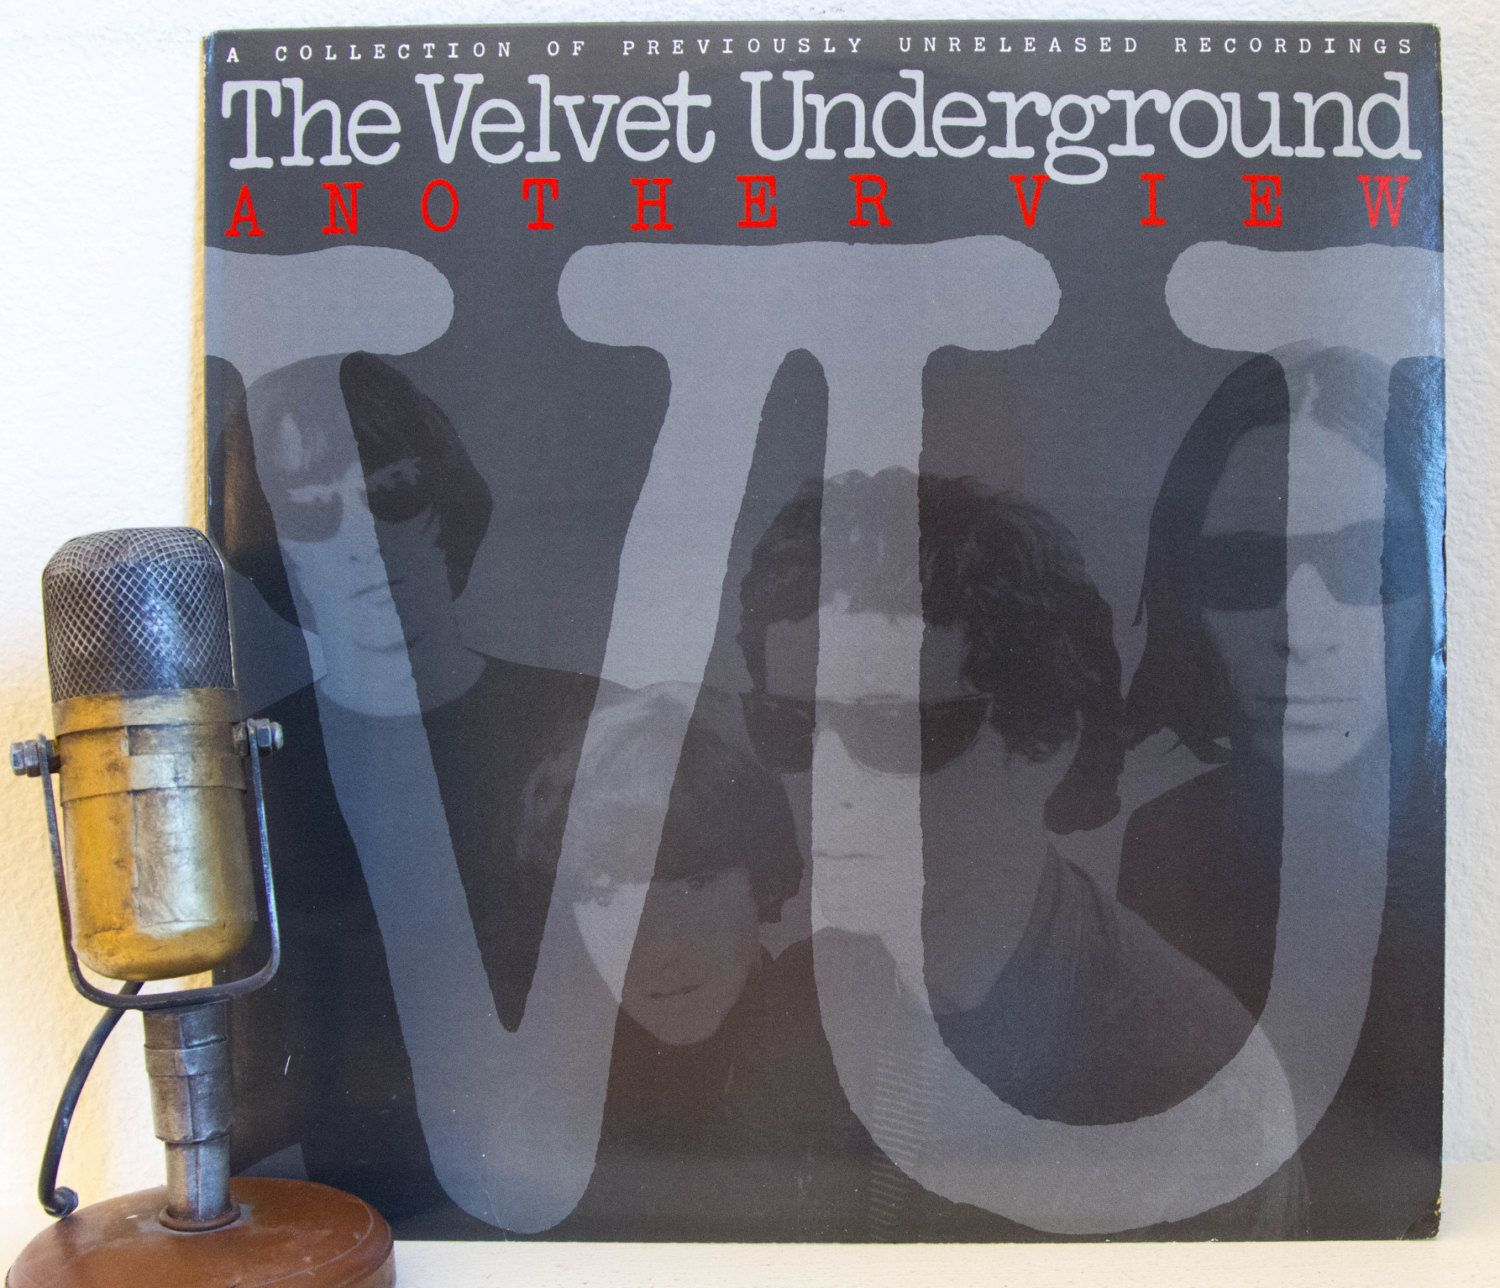 "Velvet Underground (with Lou Reed and John Cale) Vinyl Record 1970s Classic Rock New York Underground Hipster ""Another View"" (1986 Polygram)"